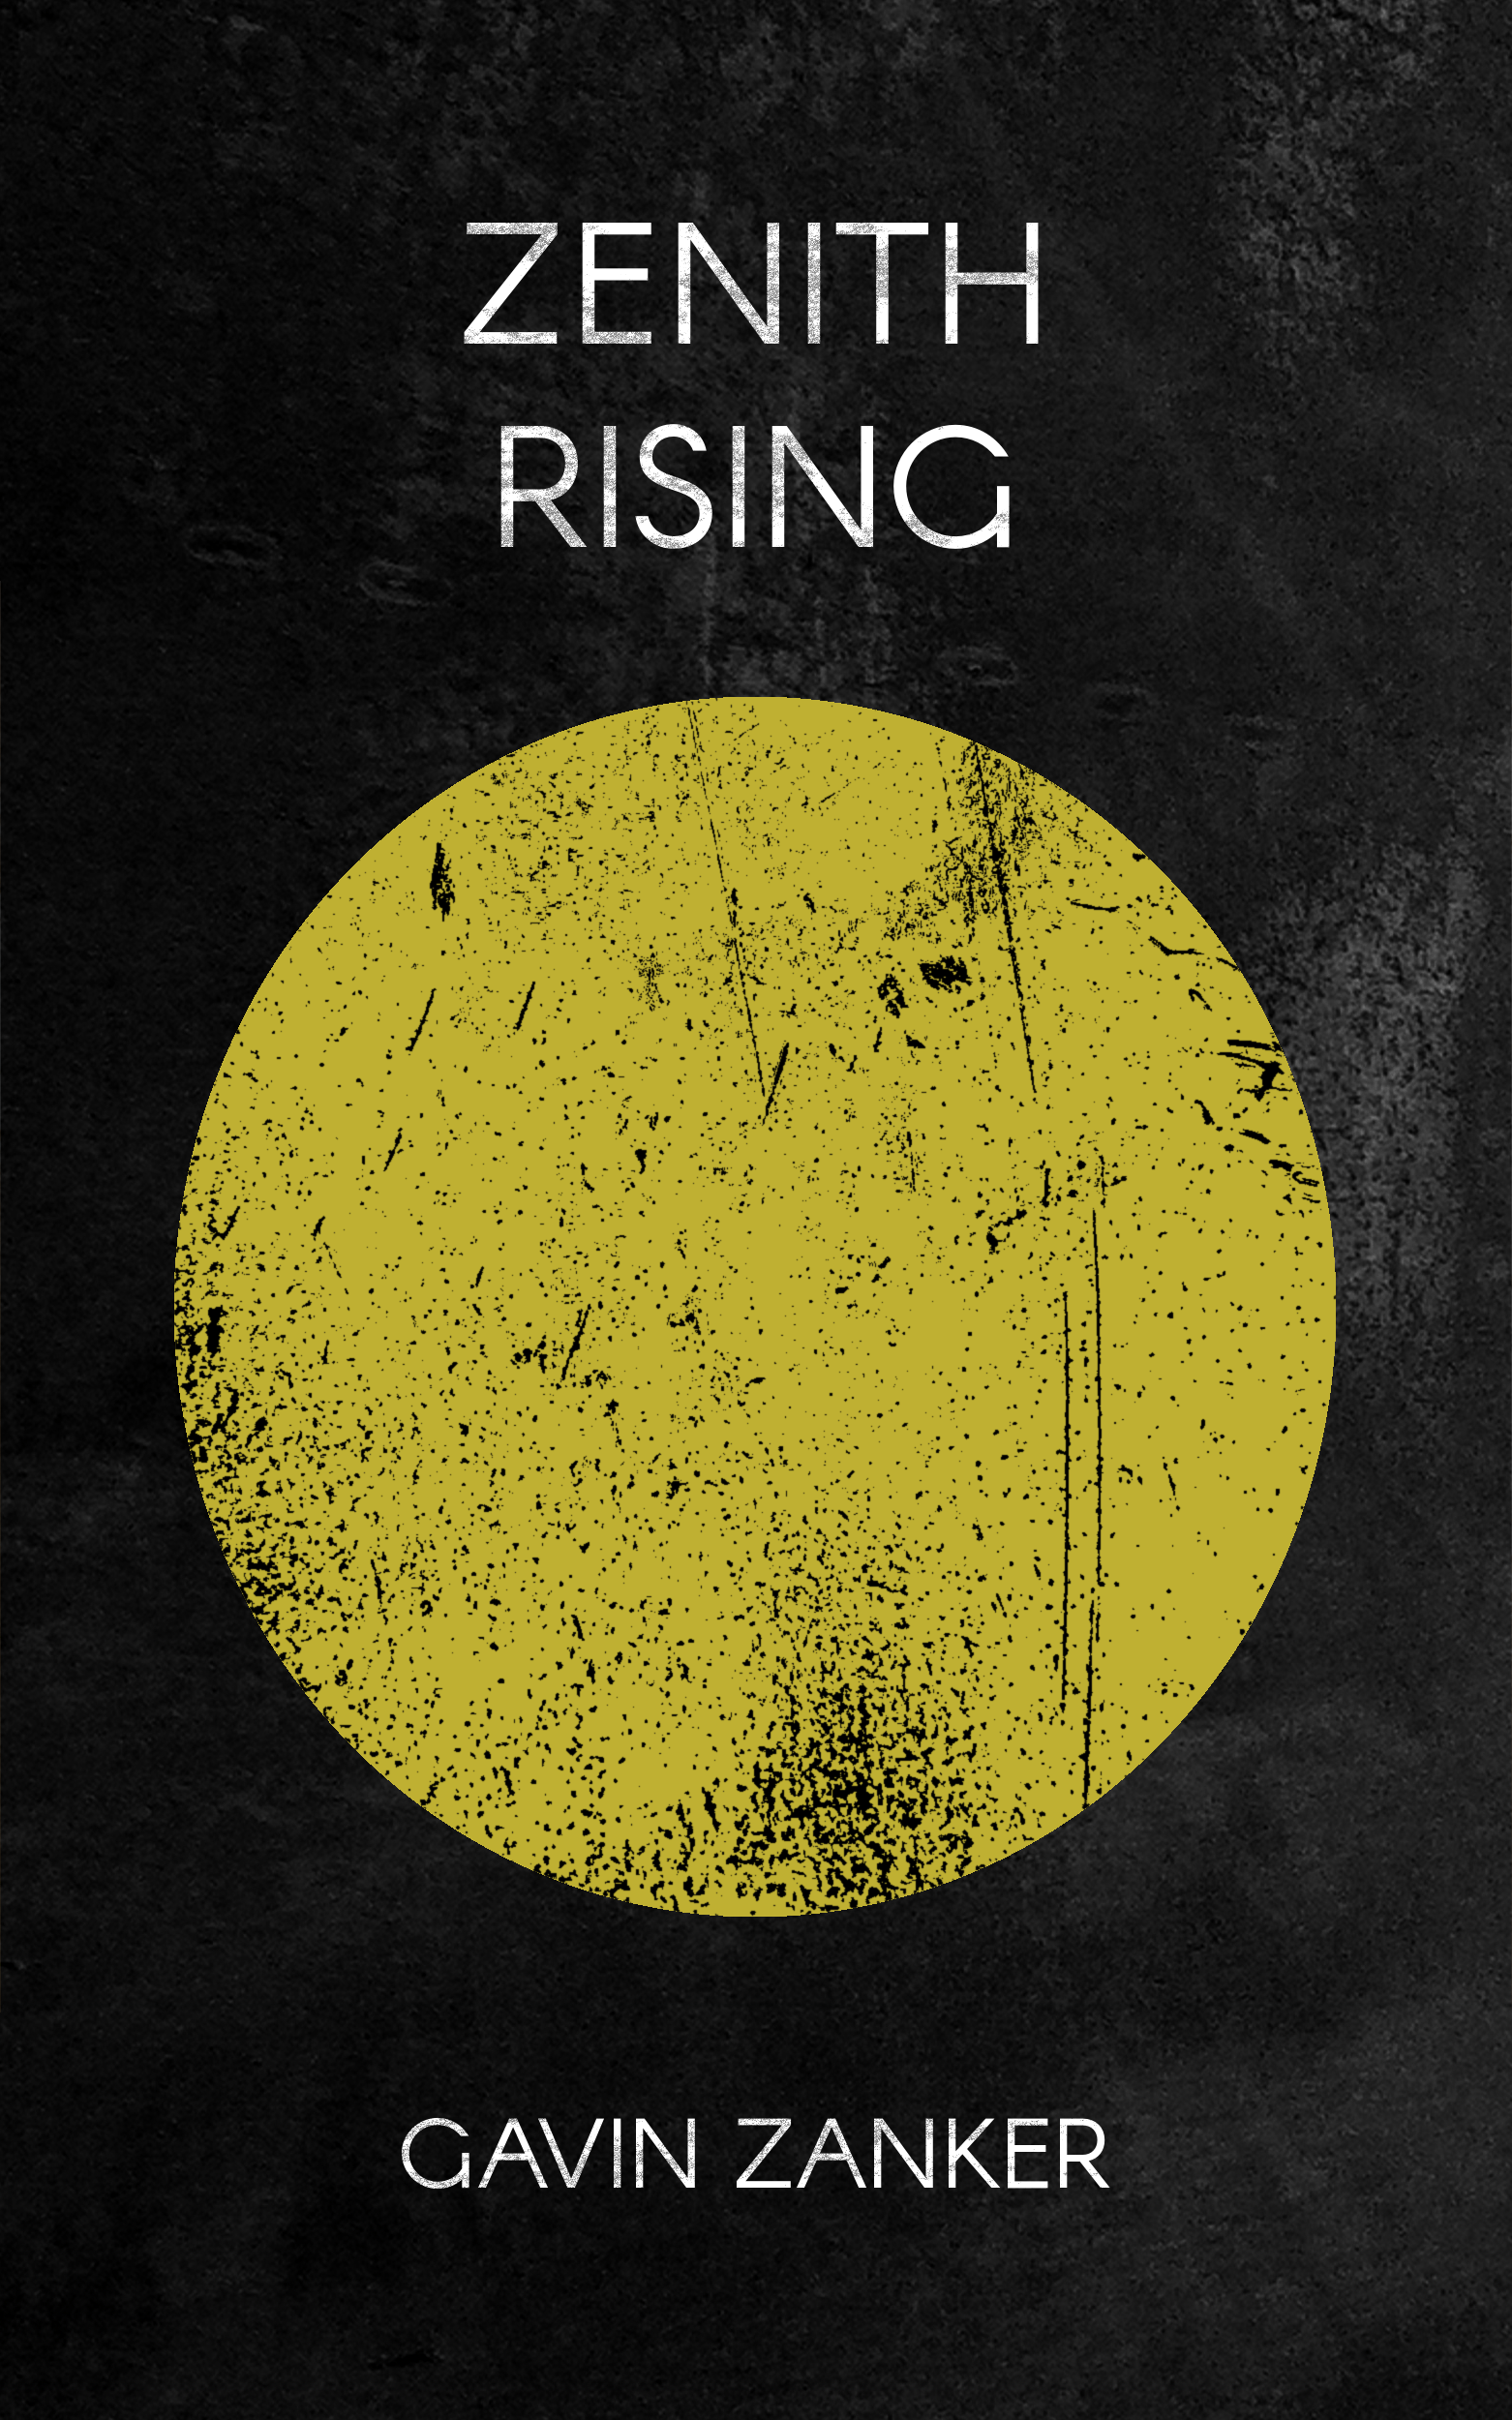 zenith_rising_workingcover_1562x2500